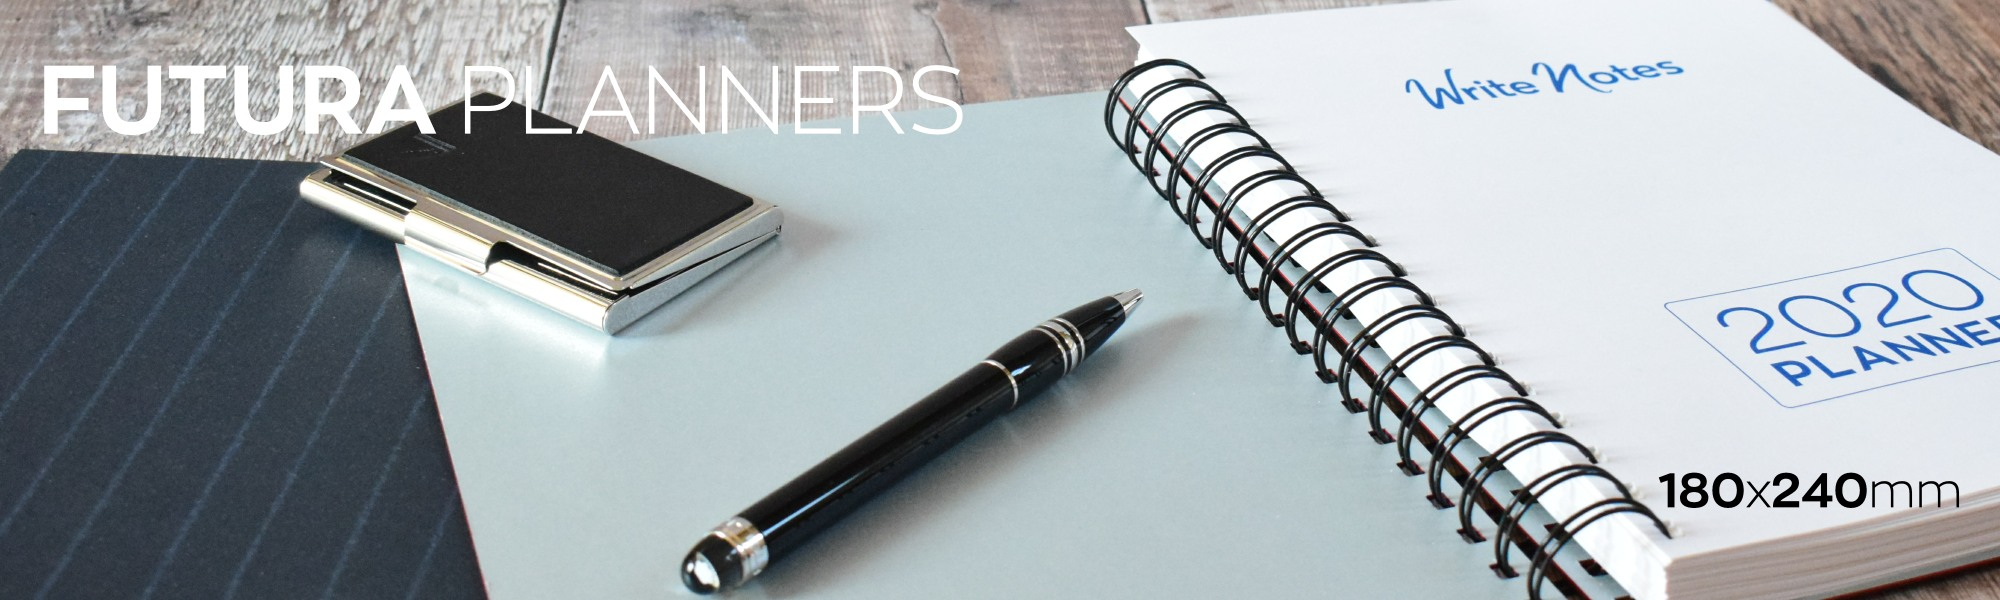 Futura Planner - Hard backed 2020 year planner for business